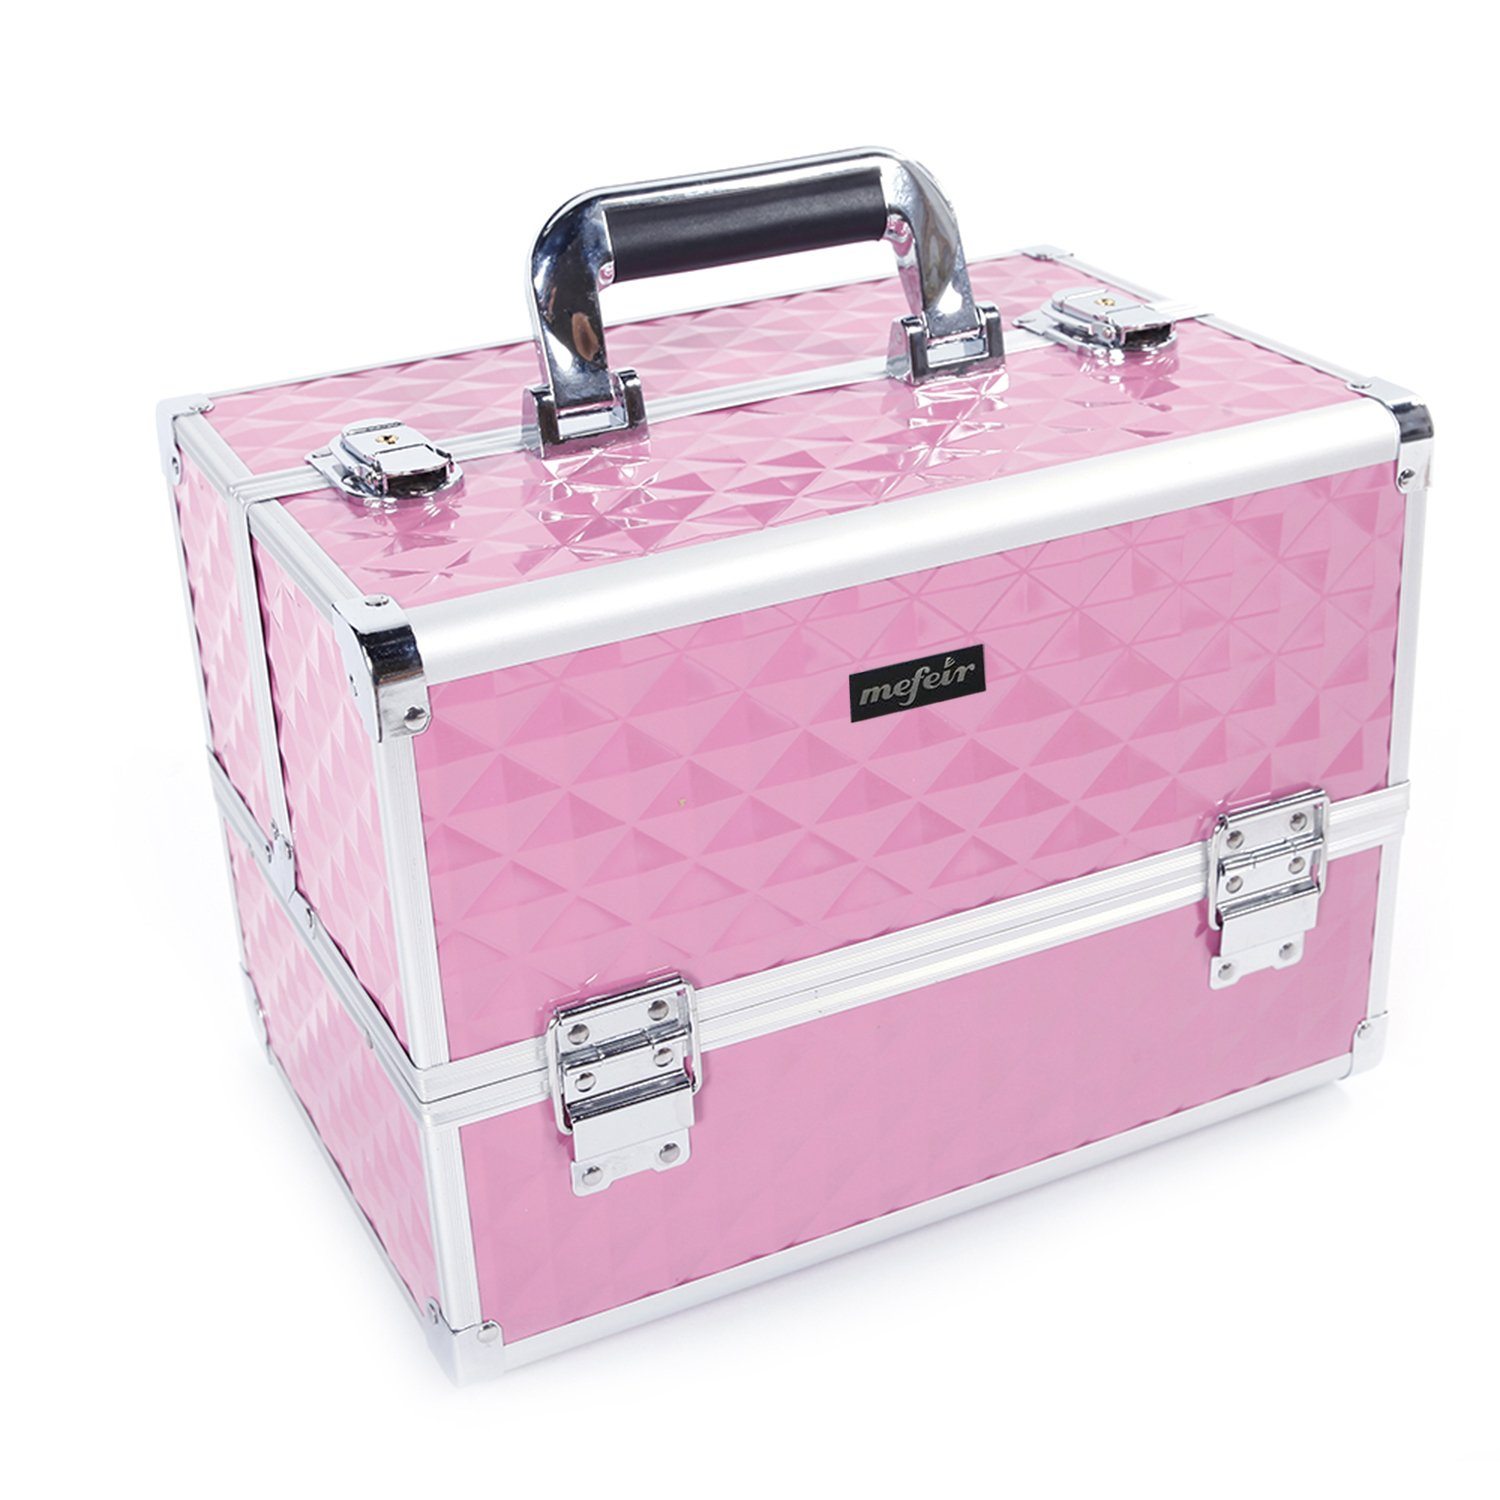 Mefeir Makeup Train Case 12.6''L w/Adjustable Dividers, 4 Trays and 2 Locks Black,Professional Travel Beauty Cosmetic Trolley Box,Birthday Mother's Day Gift (Pink)